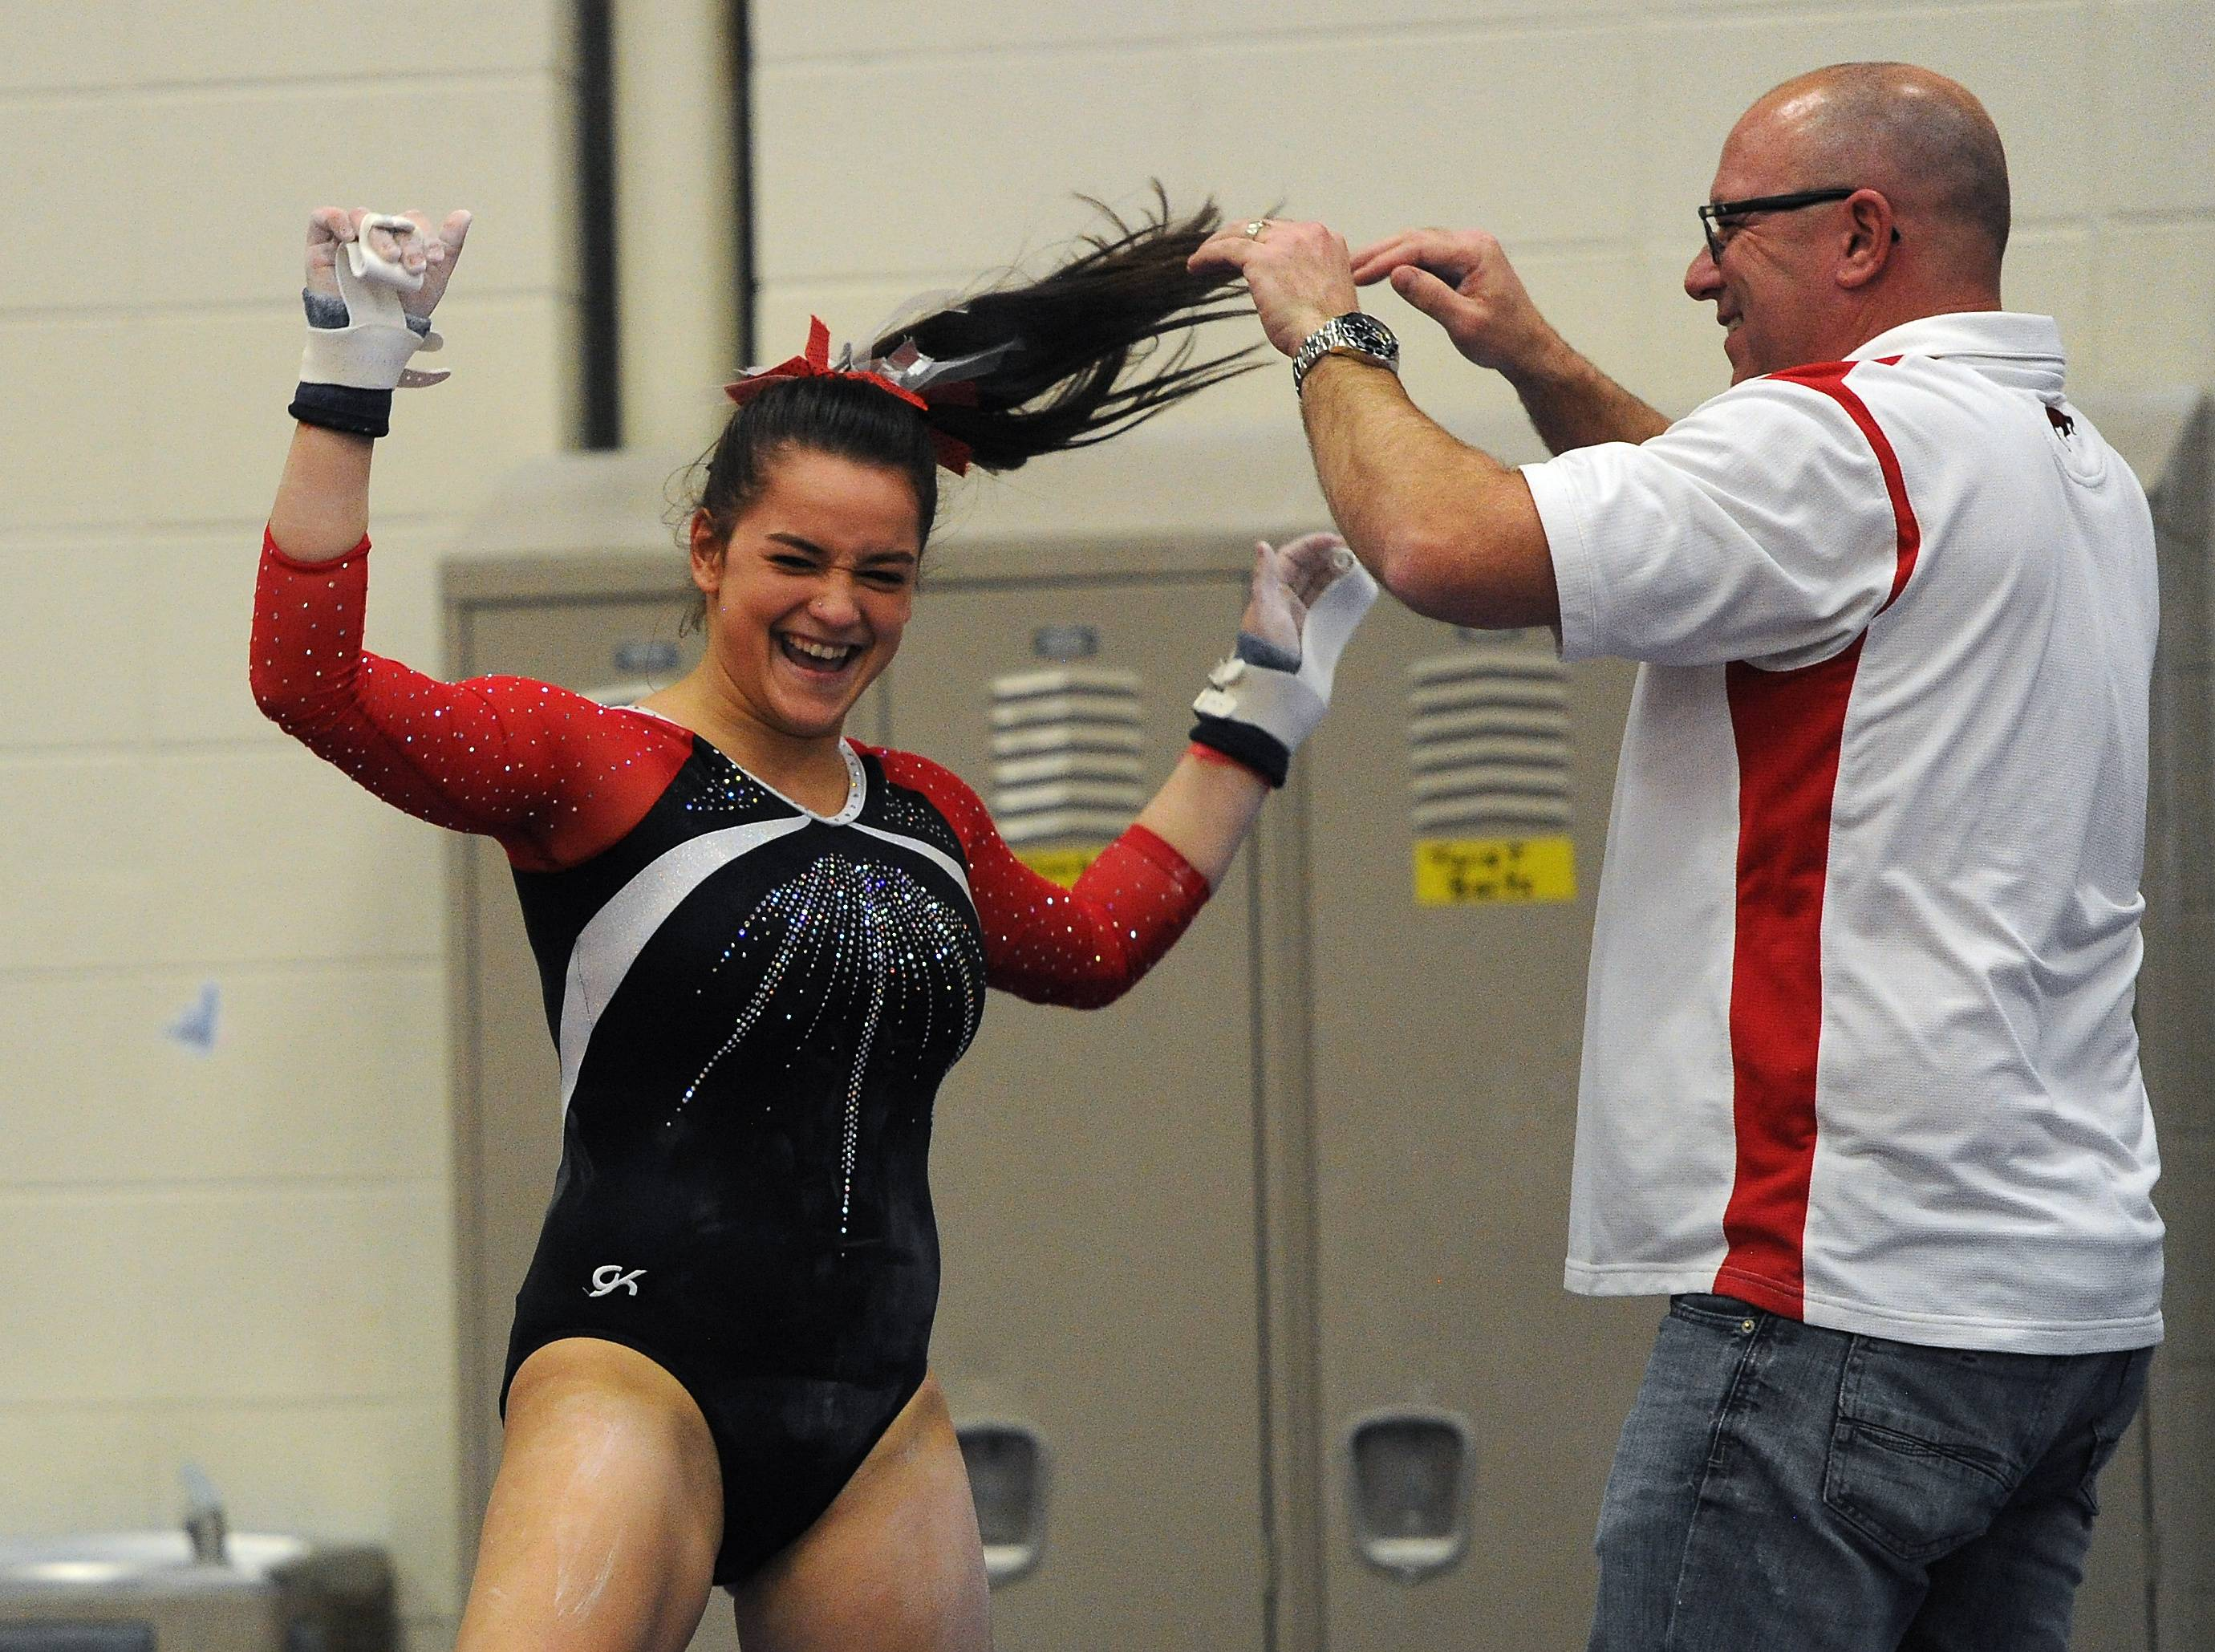 Barrington's Ashley Diaz celebrates with her coach Jason Loeffler after her routine on the uneven bars in the MSL. varsity girls gymnastics triangular meet in Barrington on Thursday.